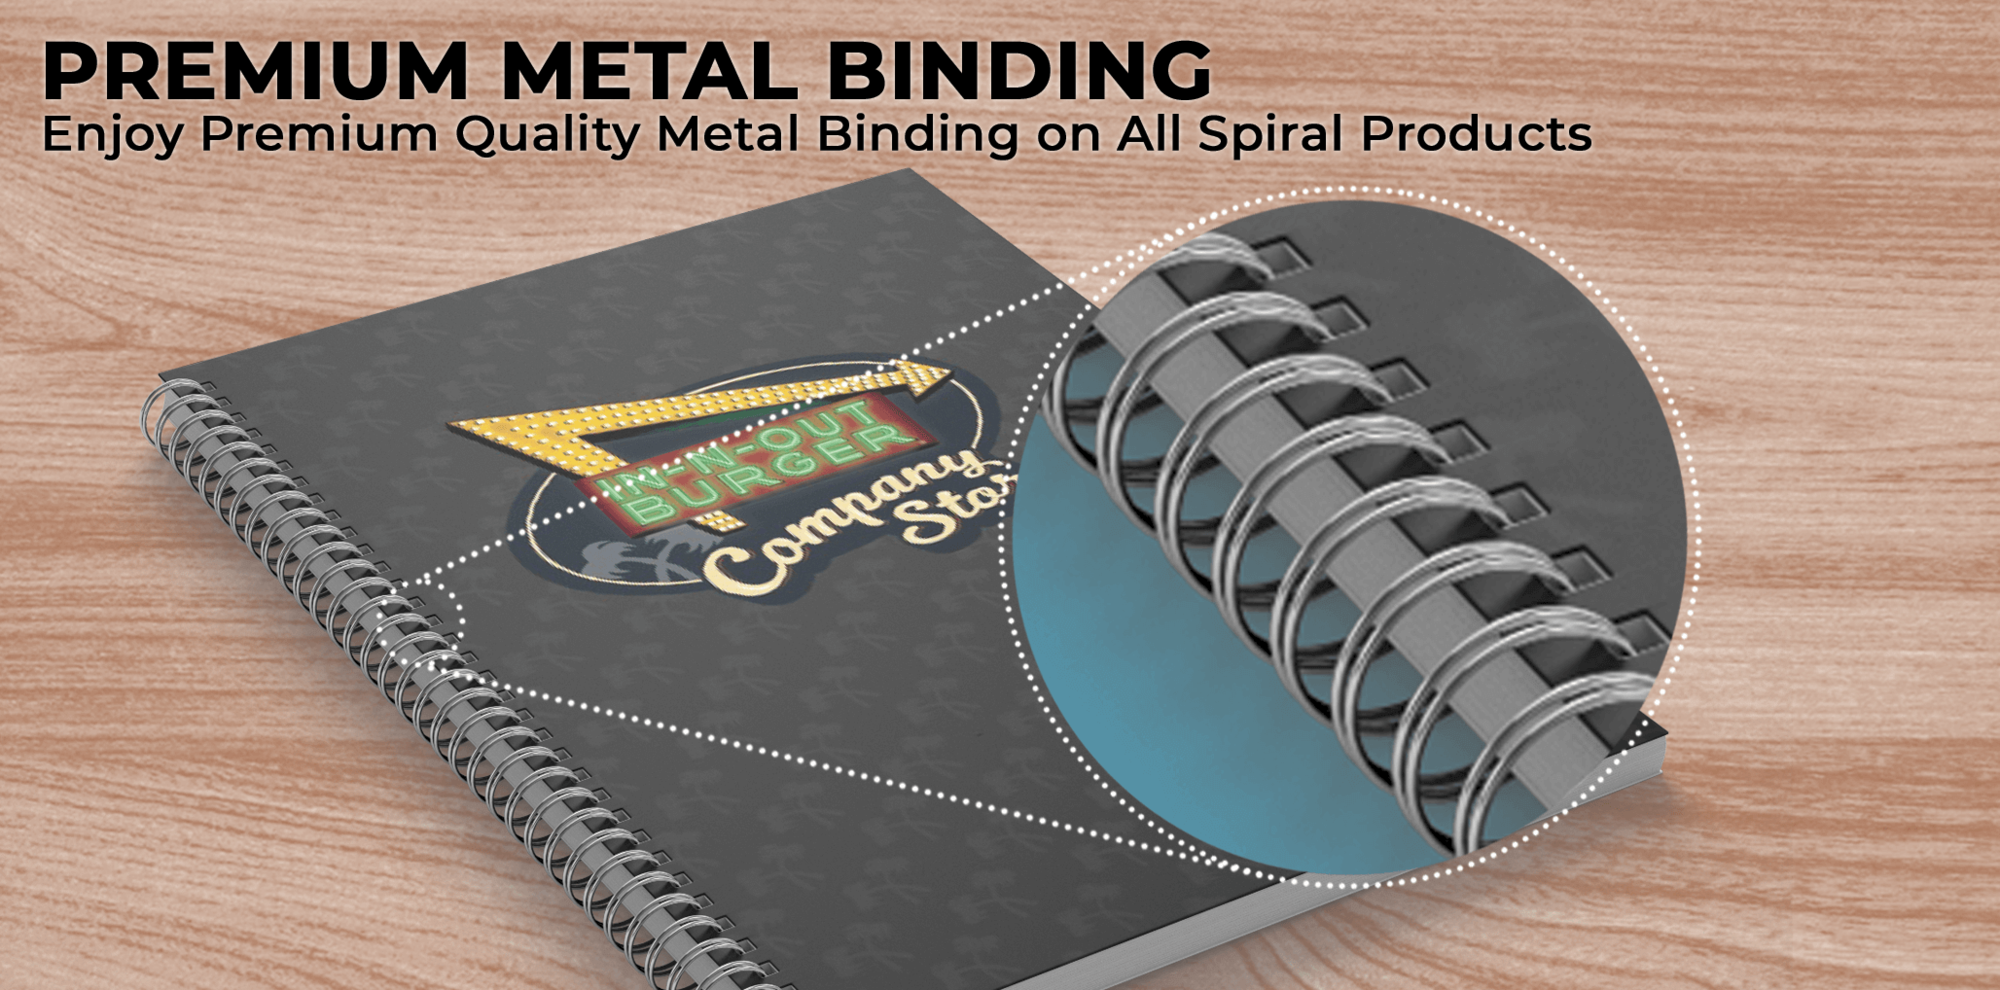 https://printpps.com/images/products_gallery_images/Banner_Spiral_FeatBinding34.png